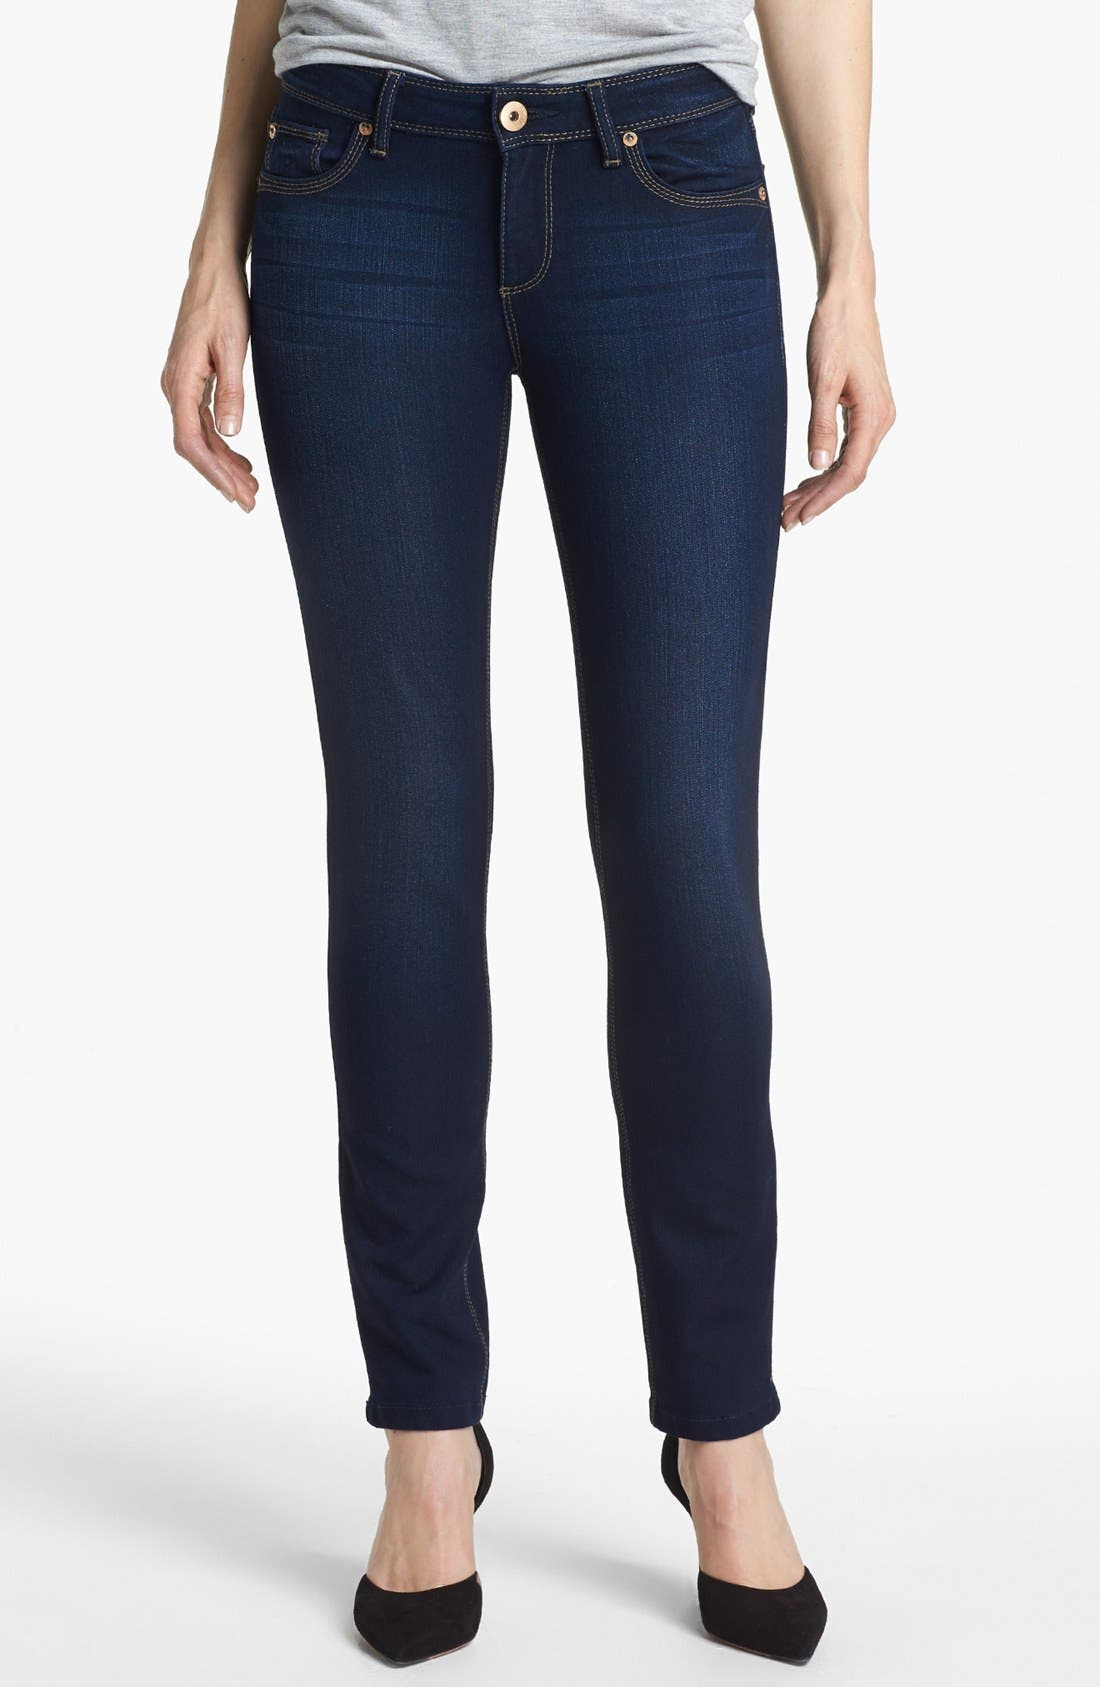 Alternate Image 1 Selected - DL1961 'Angel' Ankle Skinny Jeans (Oslo)